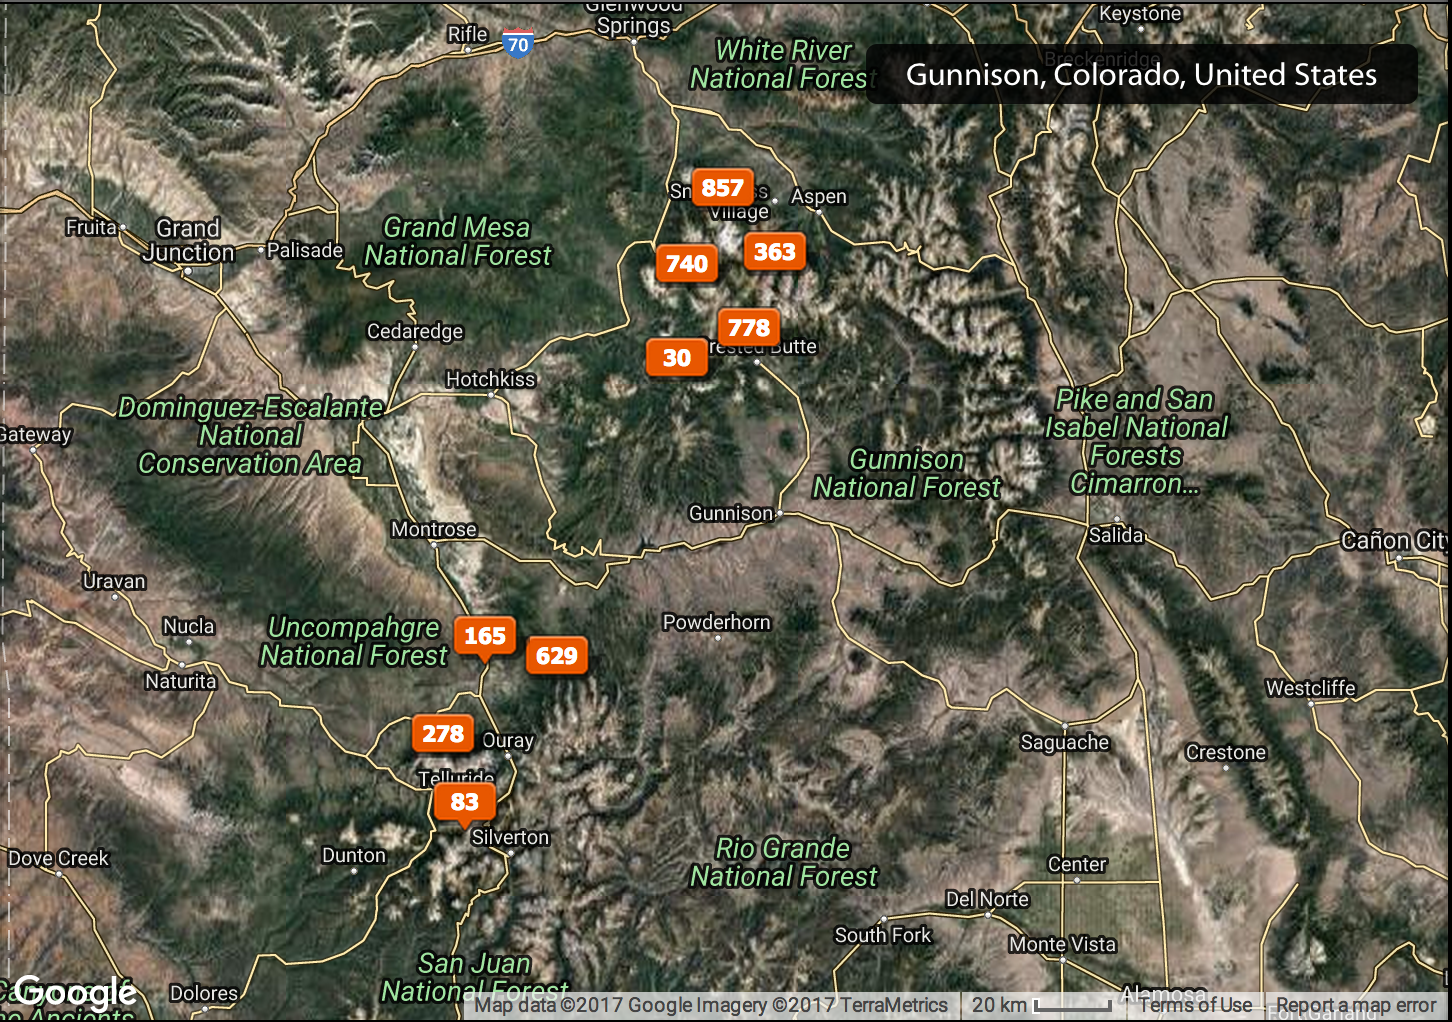 Here is the photography map of this trip.